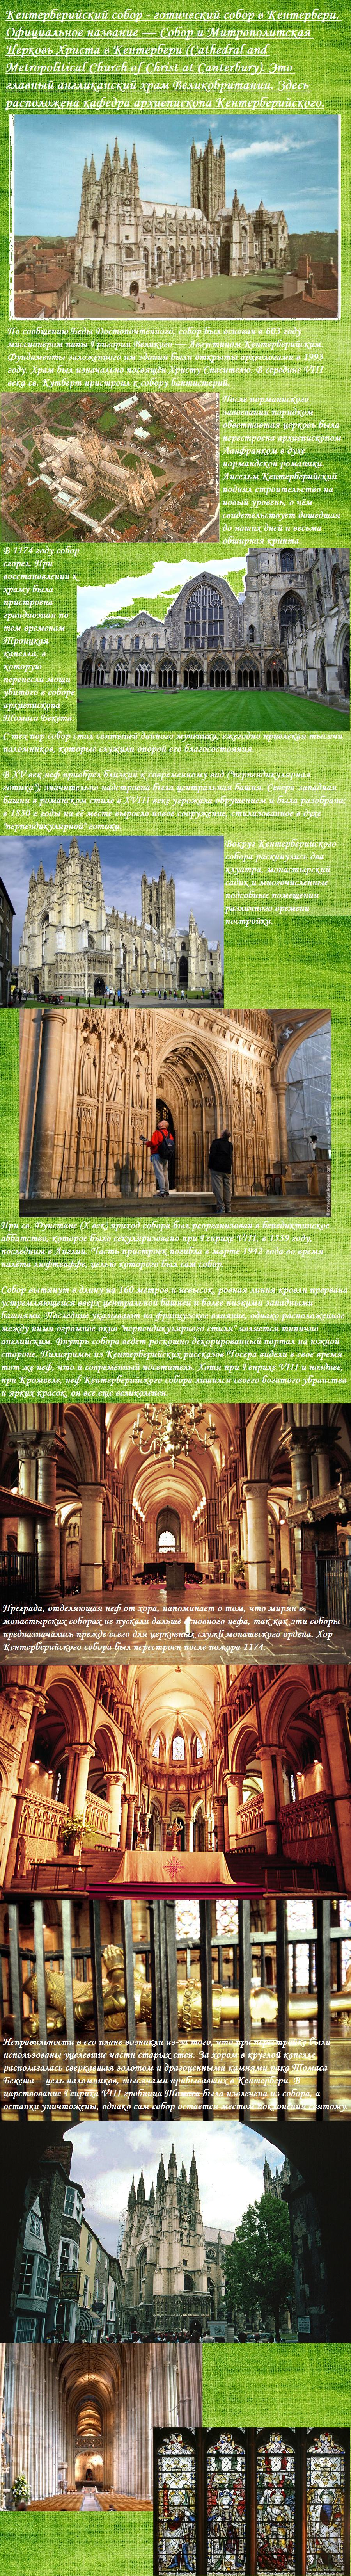 the cathedral essay